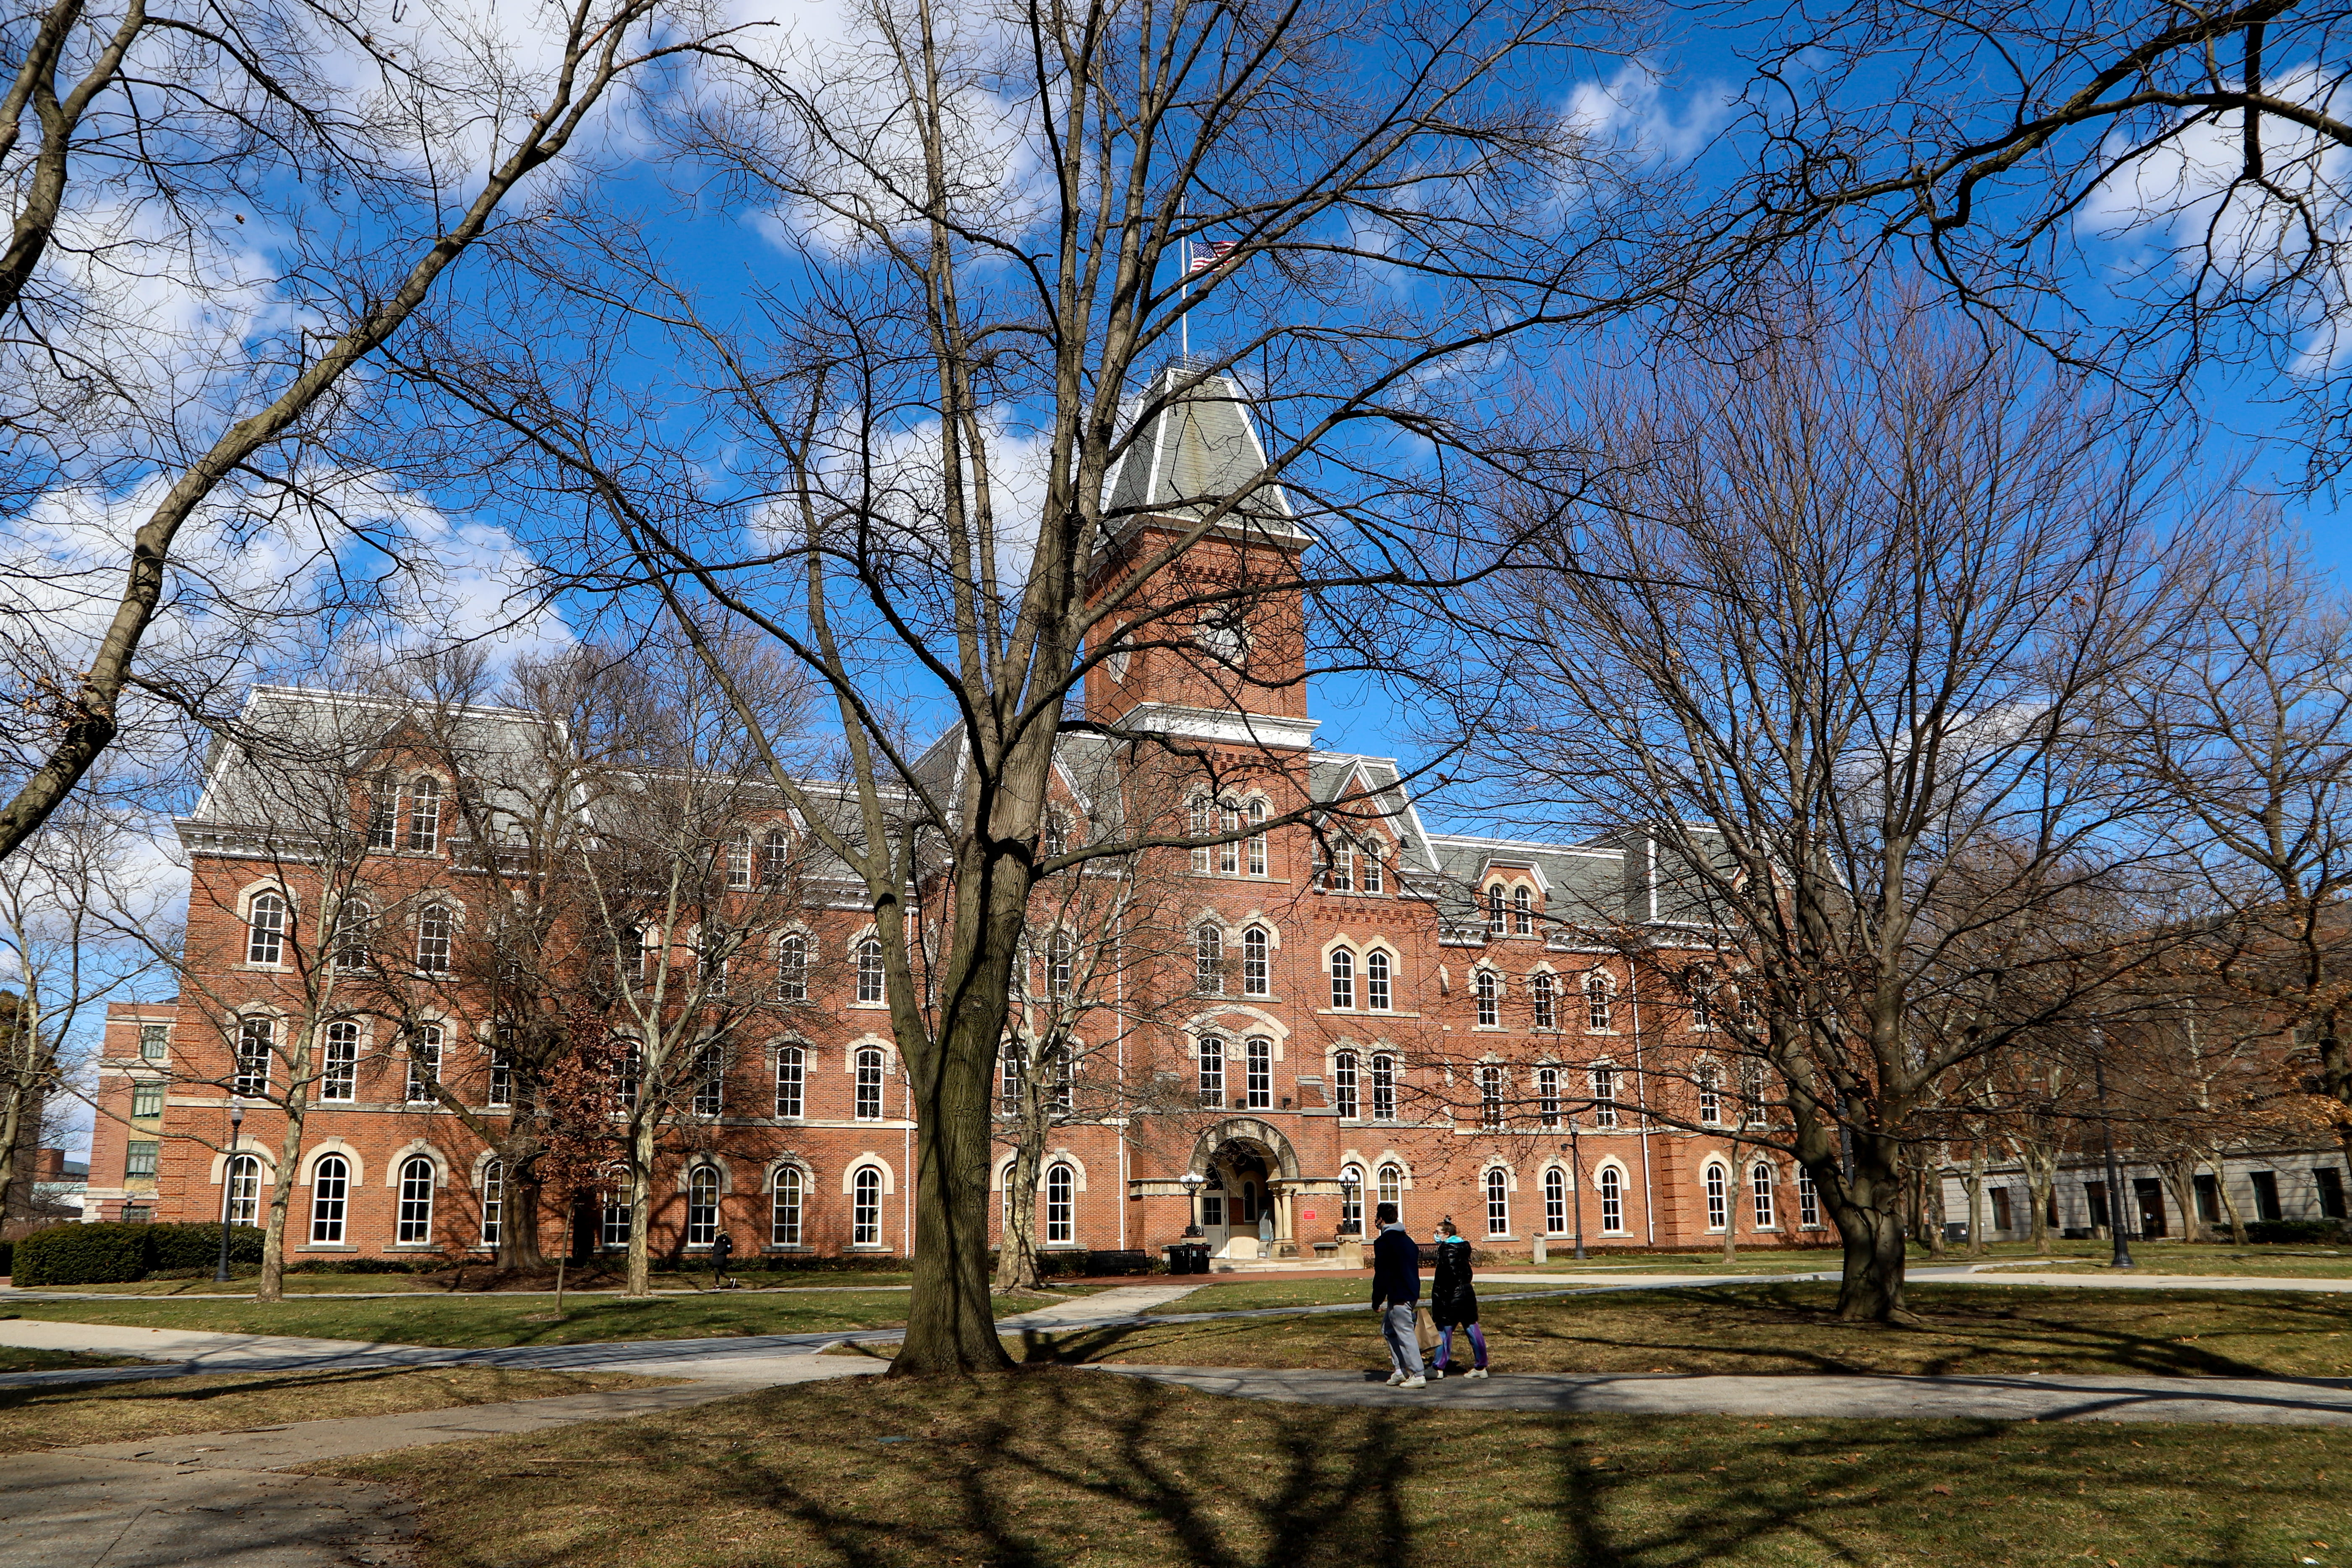 the outside of university hall